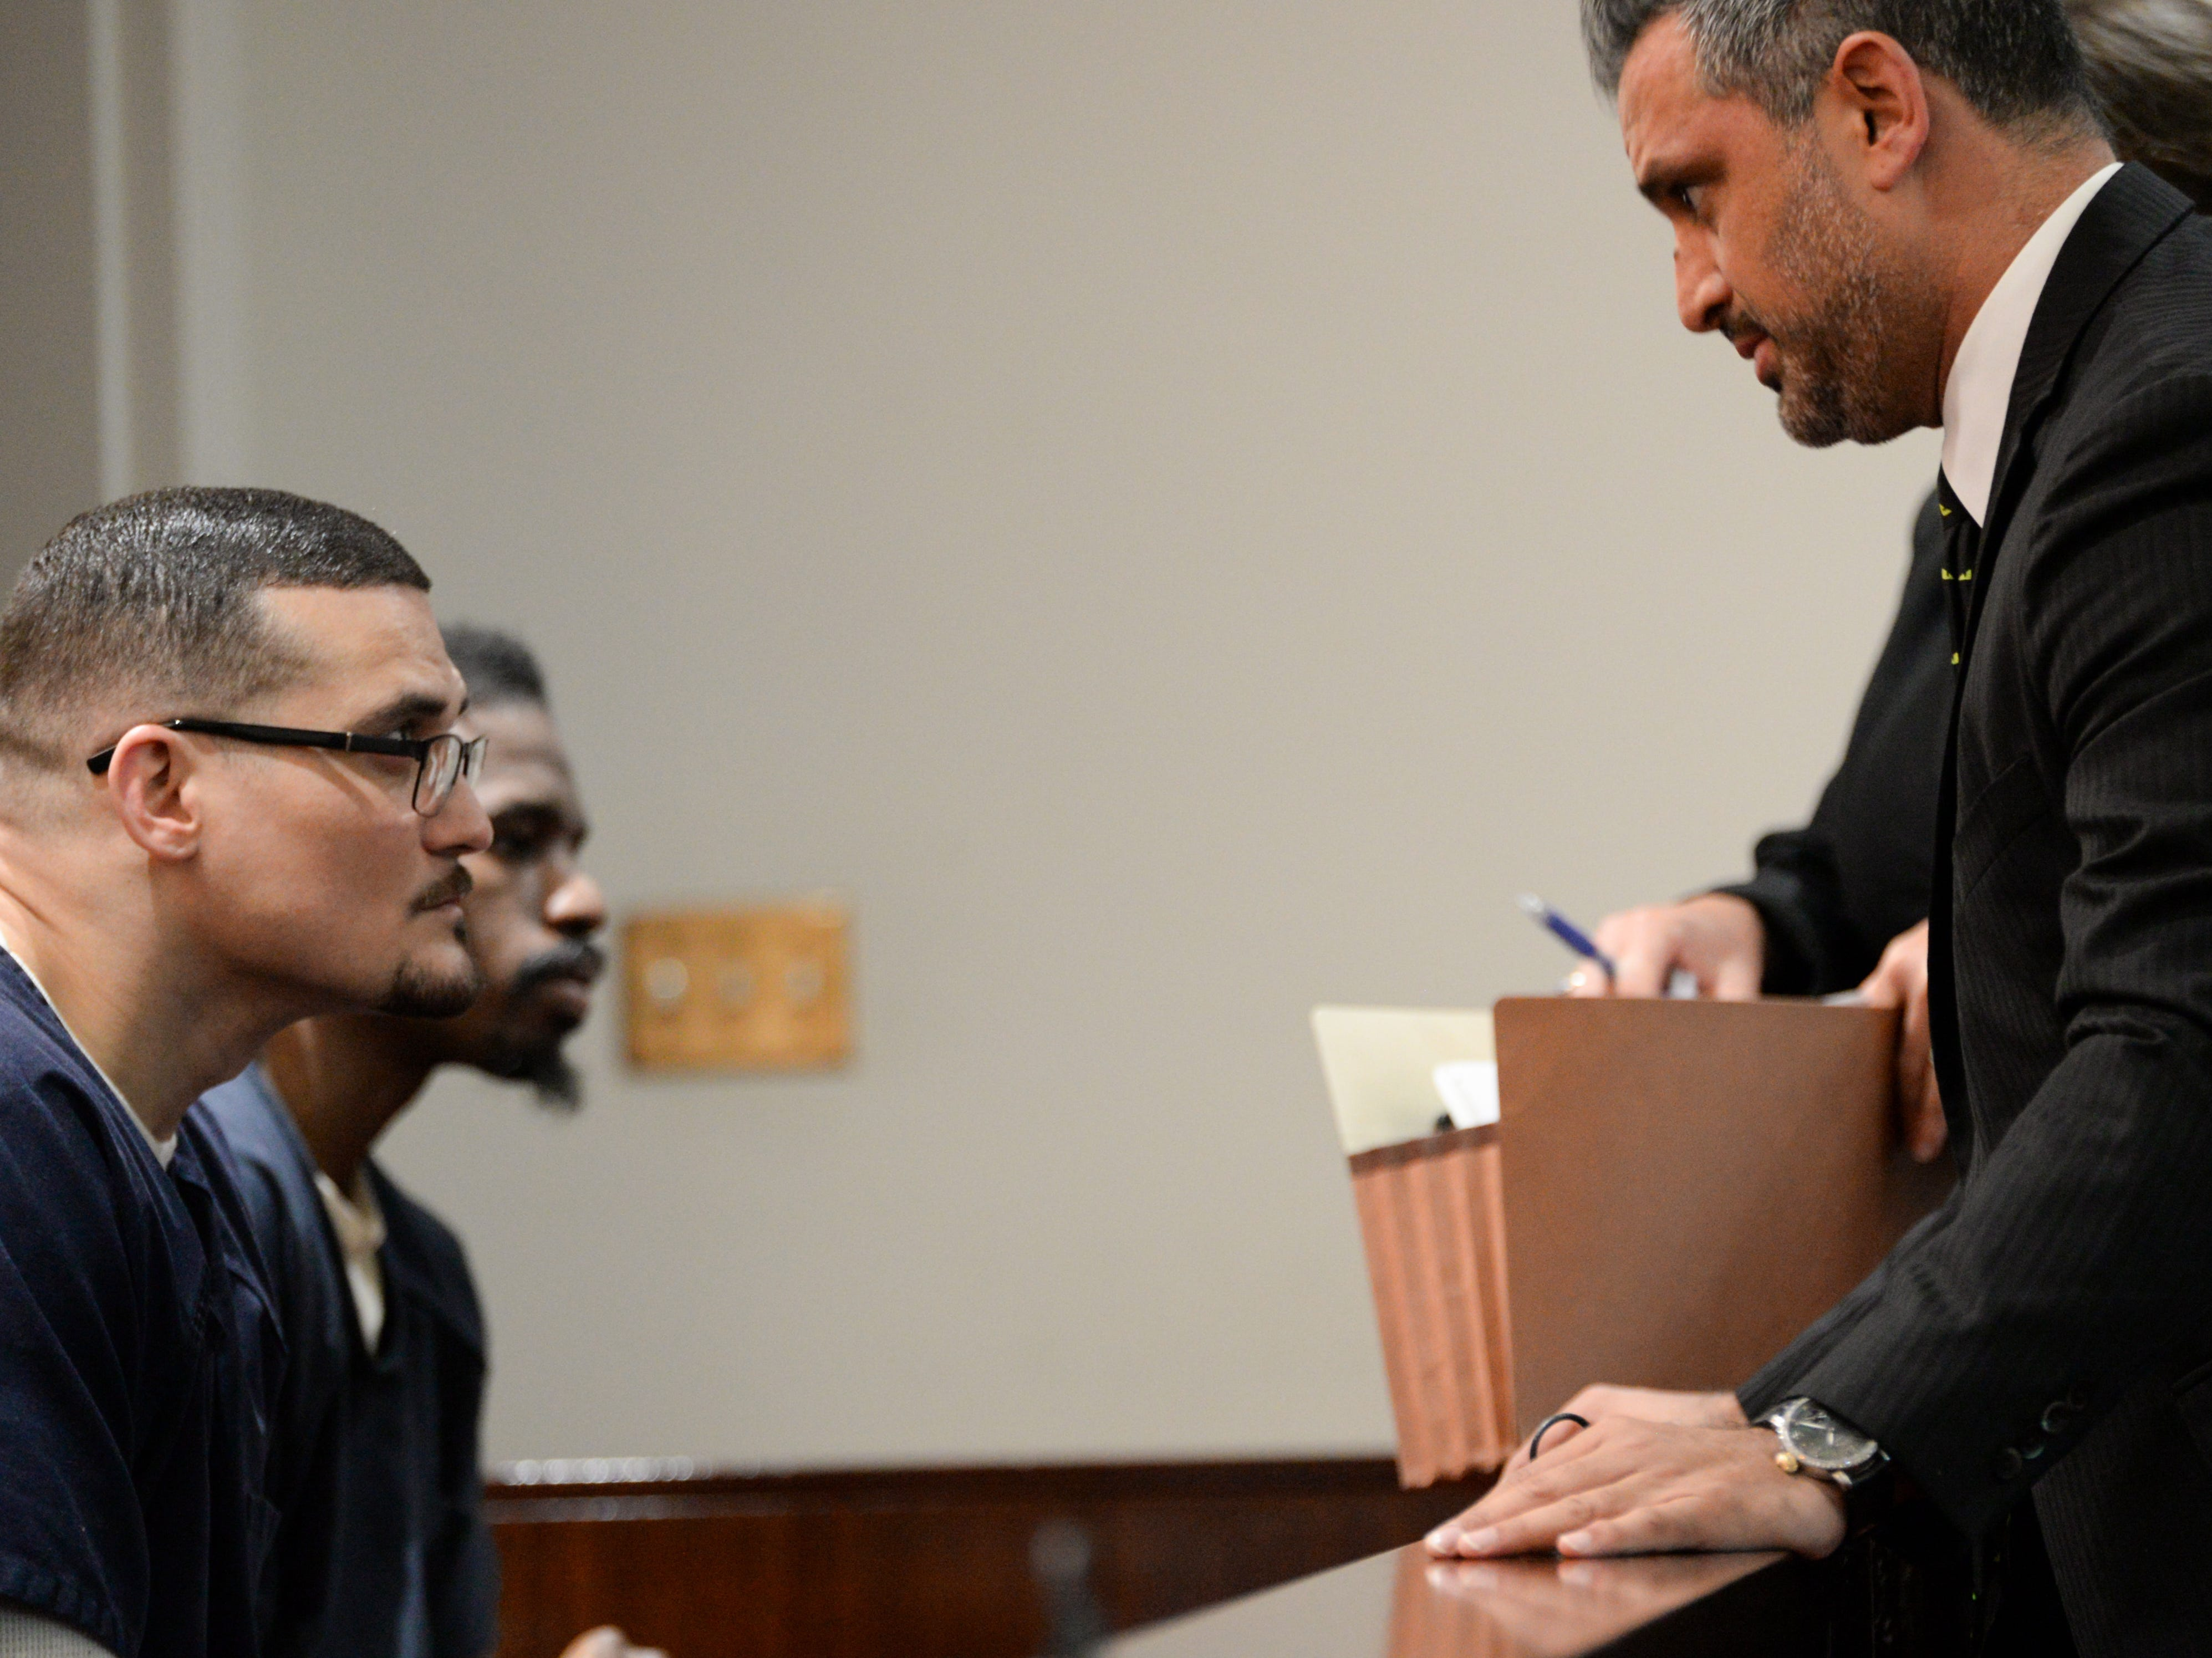 Sigfredo Garcia, one of two suspects set to stand trial next month in the murder of Dan Markel, talks with his attorney Saam Zengeneh at the Leon County Courthouse Tuesday, May 7, 2019. The pair asked Leon County Circuit Judge James C. Hankinson for a continuance and were denied.